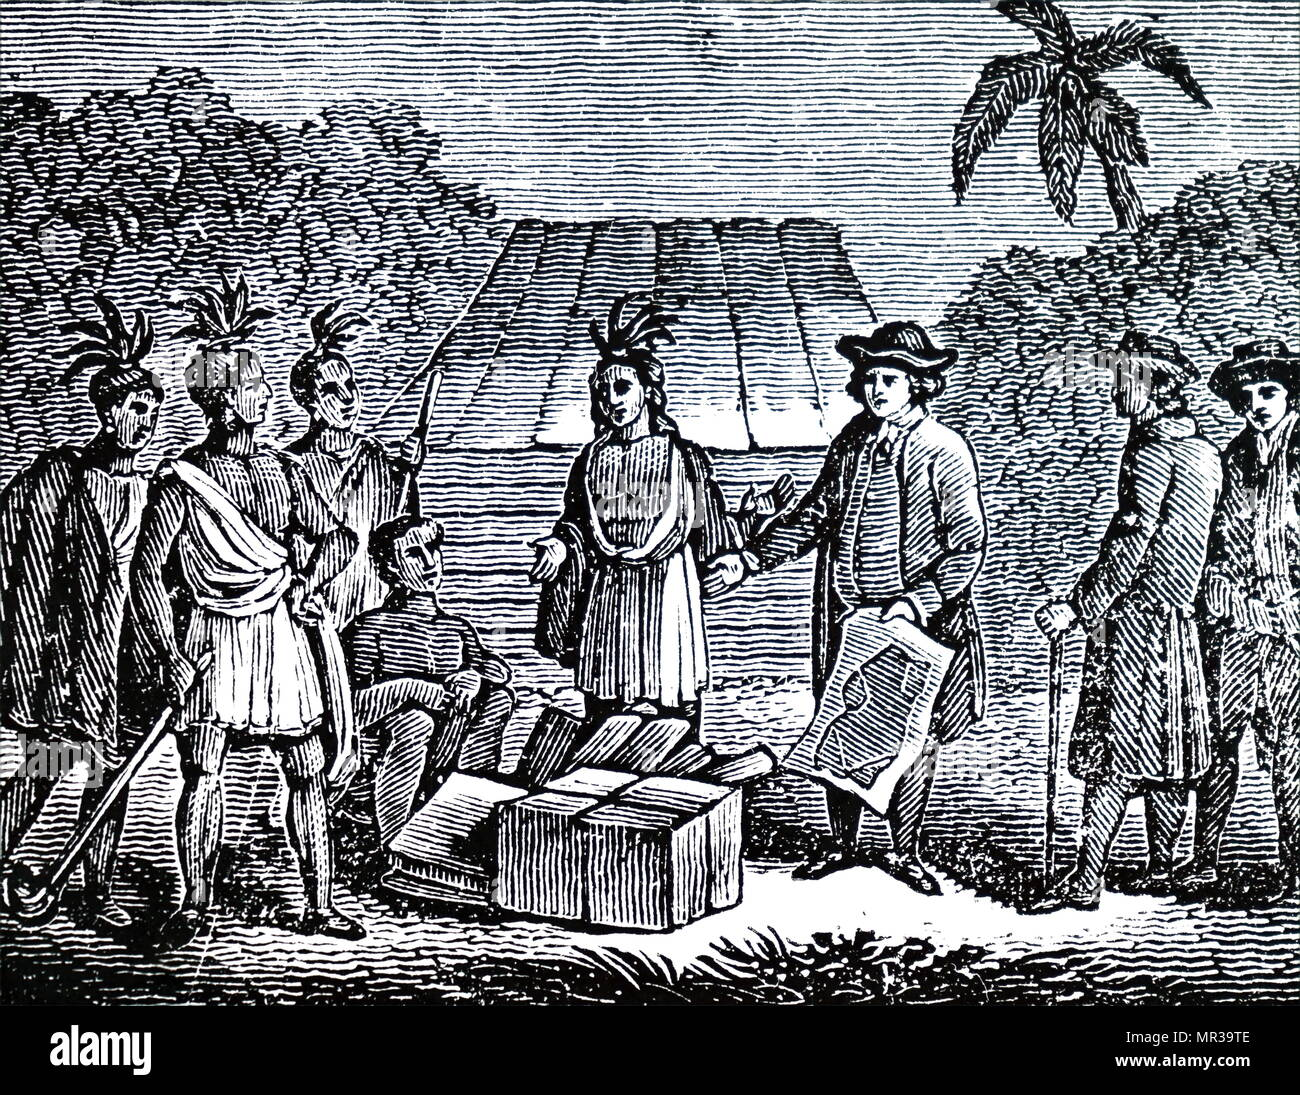 Engraving depicting William Penn treating with Indians. William Penn (1644-1718) an English real estate entrepreneur, philosopher, early Quaker, founder of the State of Pennsylvania. Dated 19th century Stock Photo